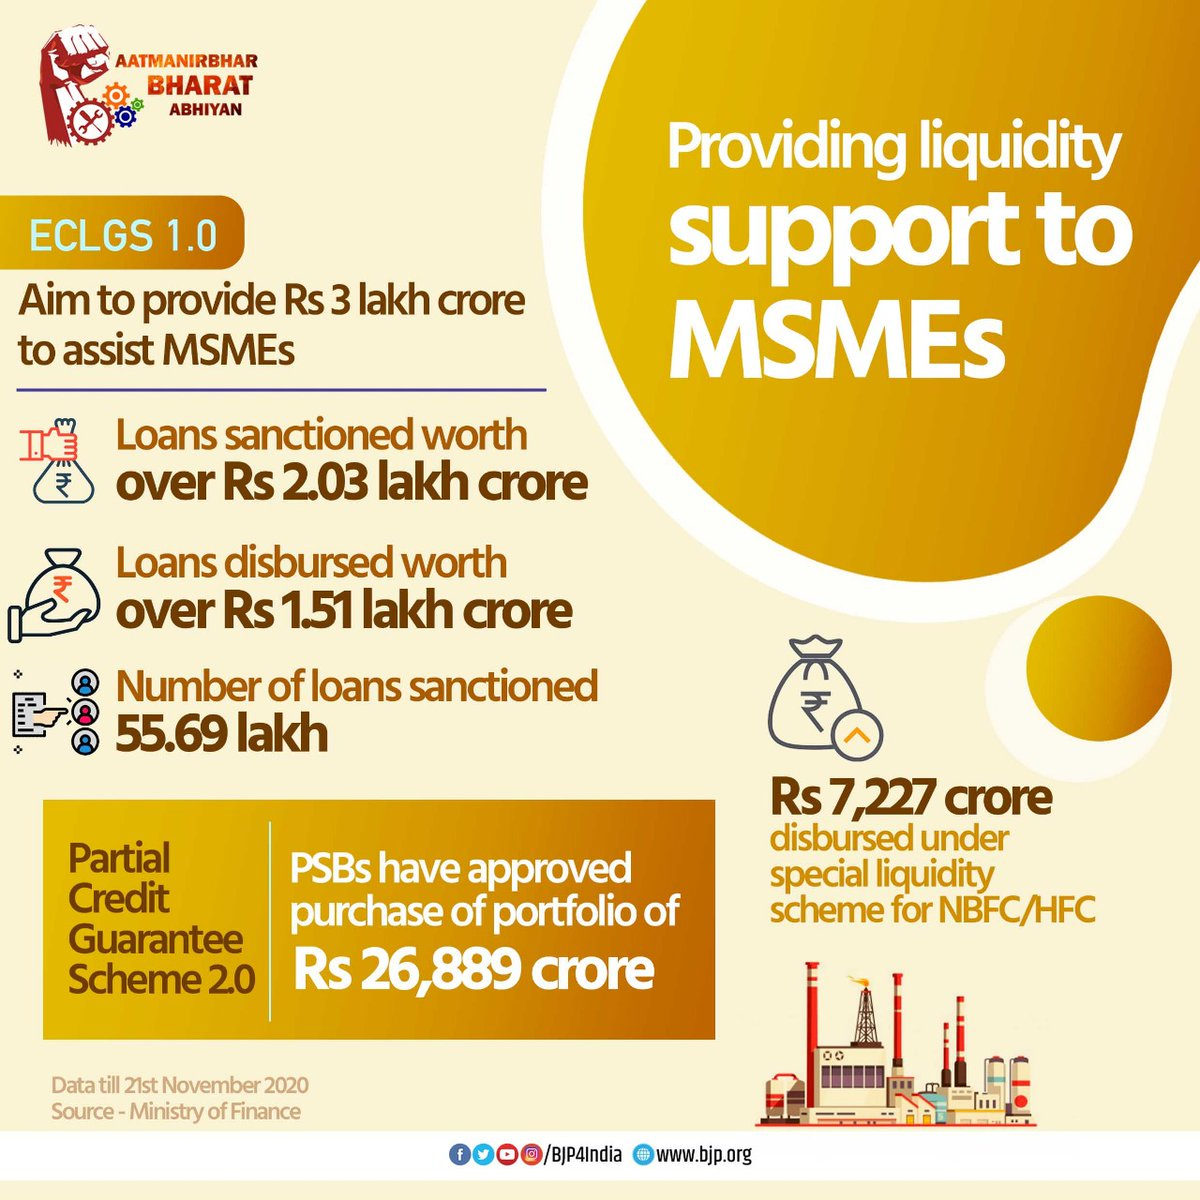 Modi government has provided unprecedented liquidity support to MSMEs to help them tide over the economic hardships arisen out of COVID pandemic.  Loans worth over Rs 2.03 lakh crore have been sanctioned to over 55.69 lakh beneficiaries under ECLG scheme.  #AatmaNirbharBharat